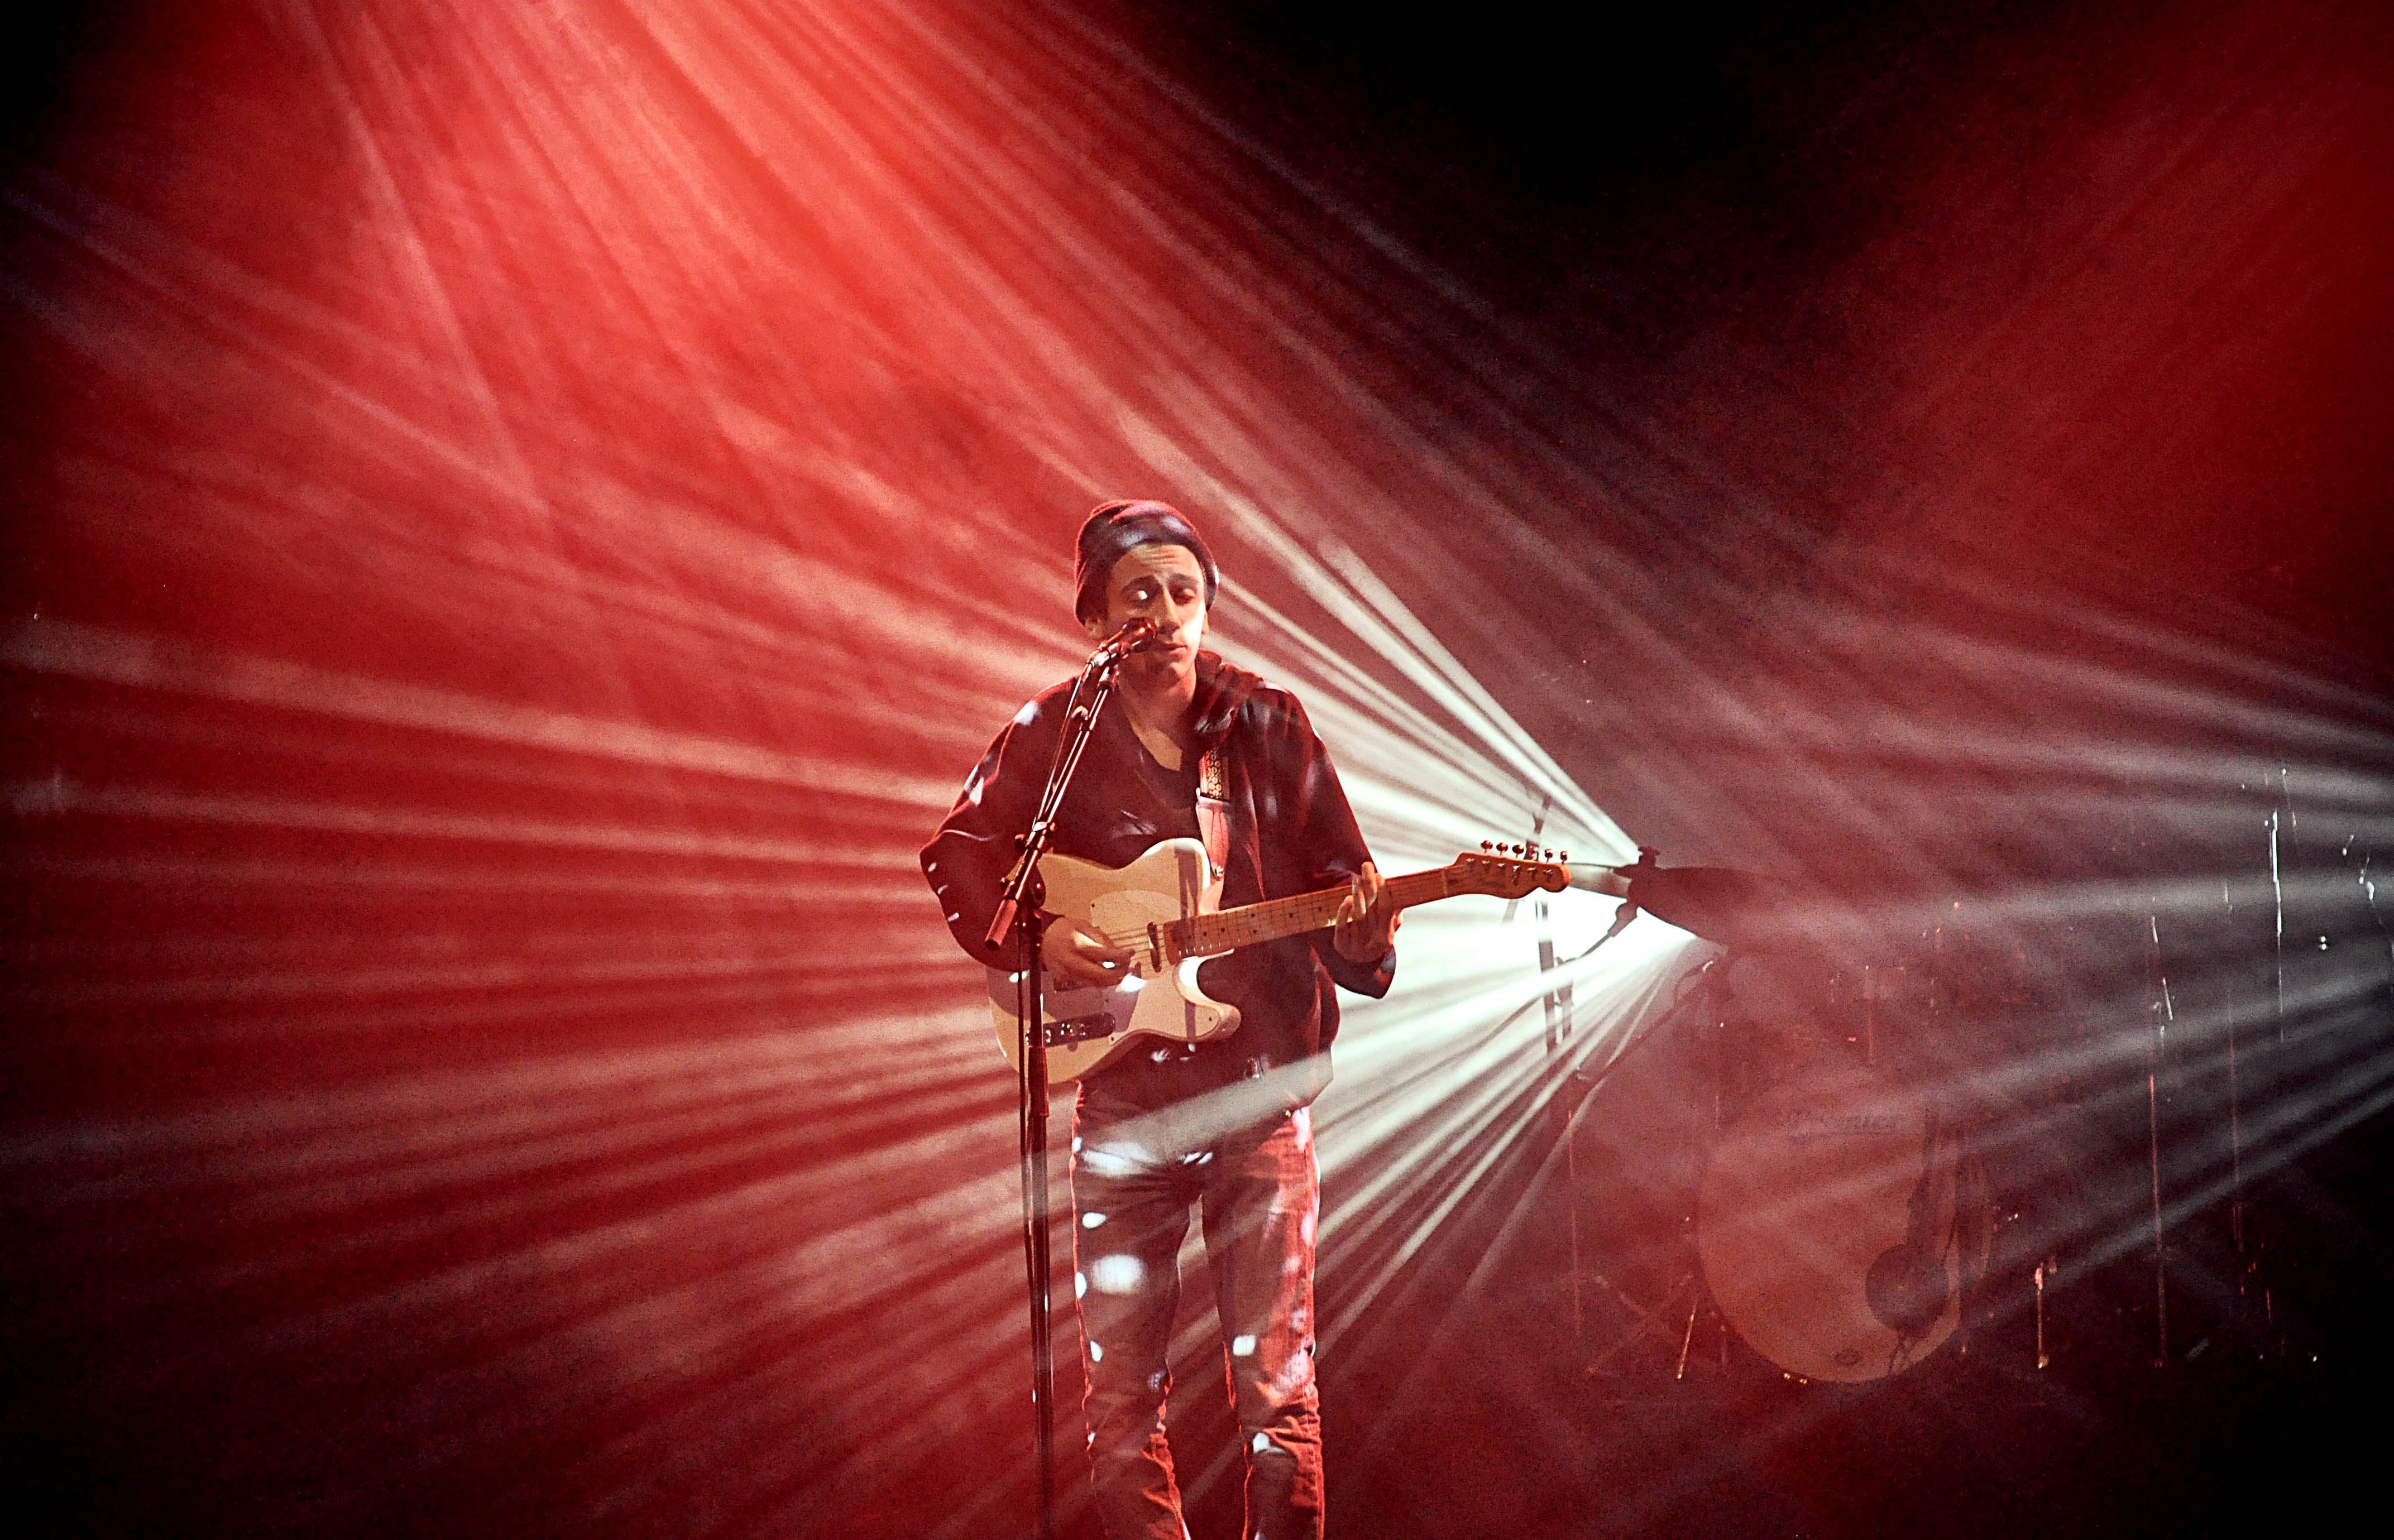 Free stock photo of red, lights, music, show